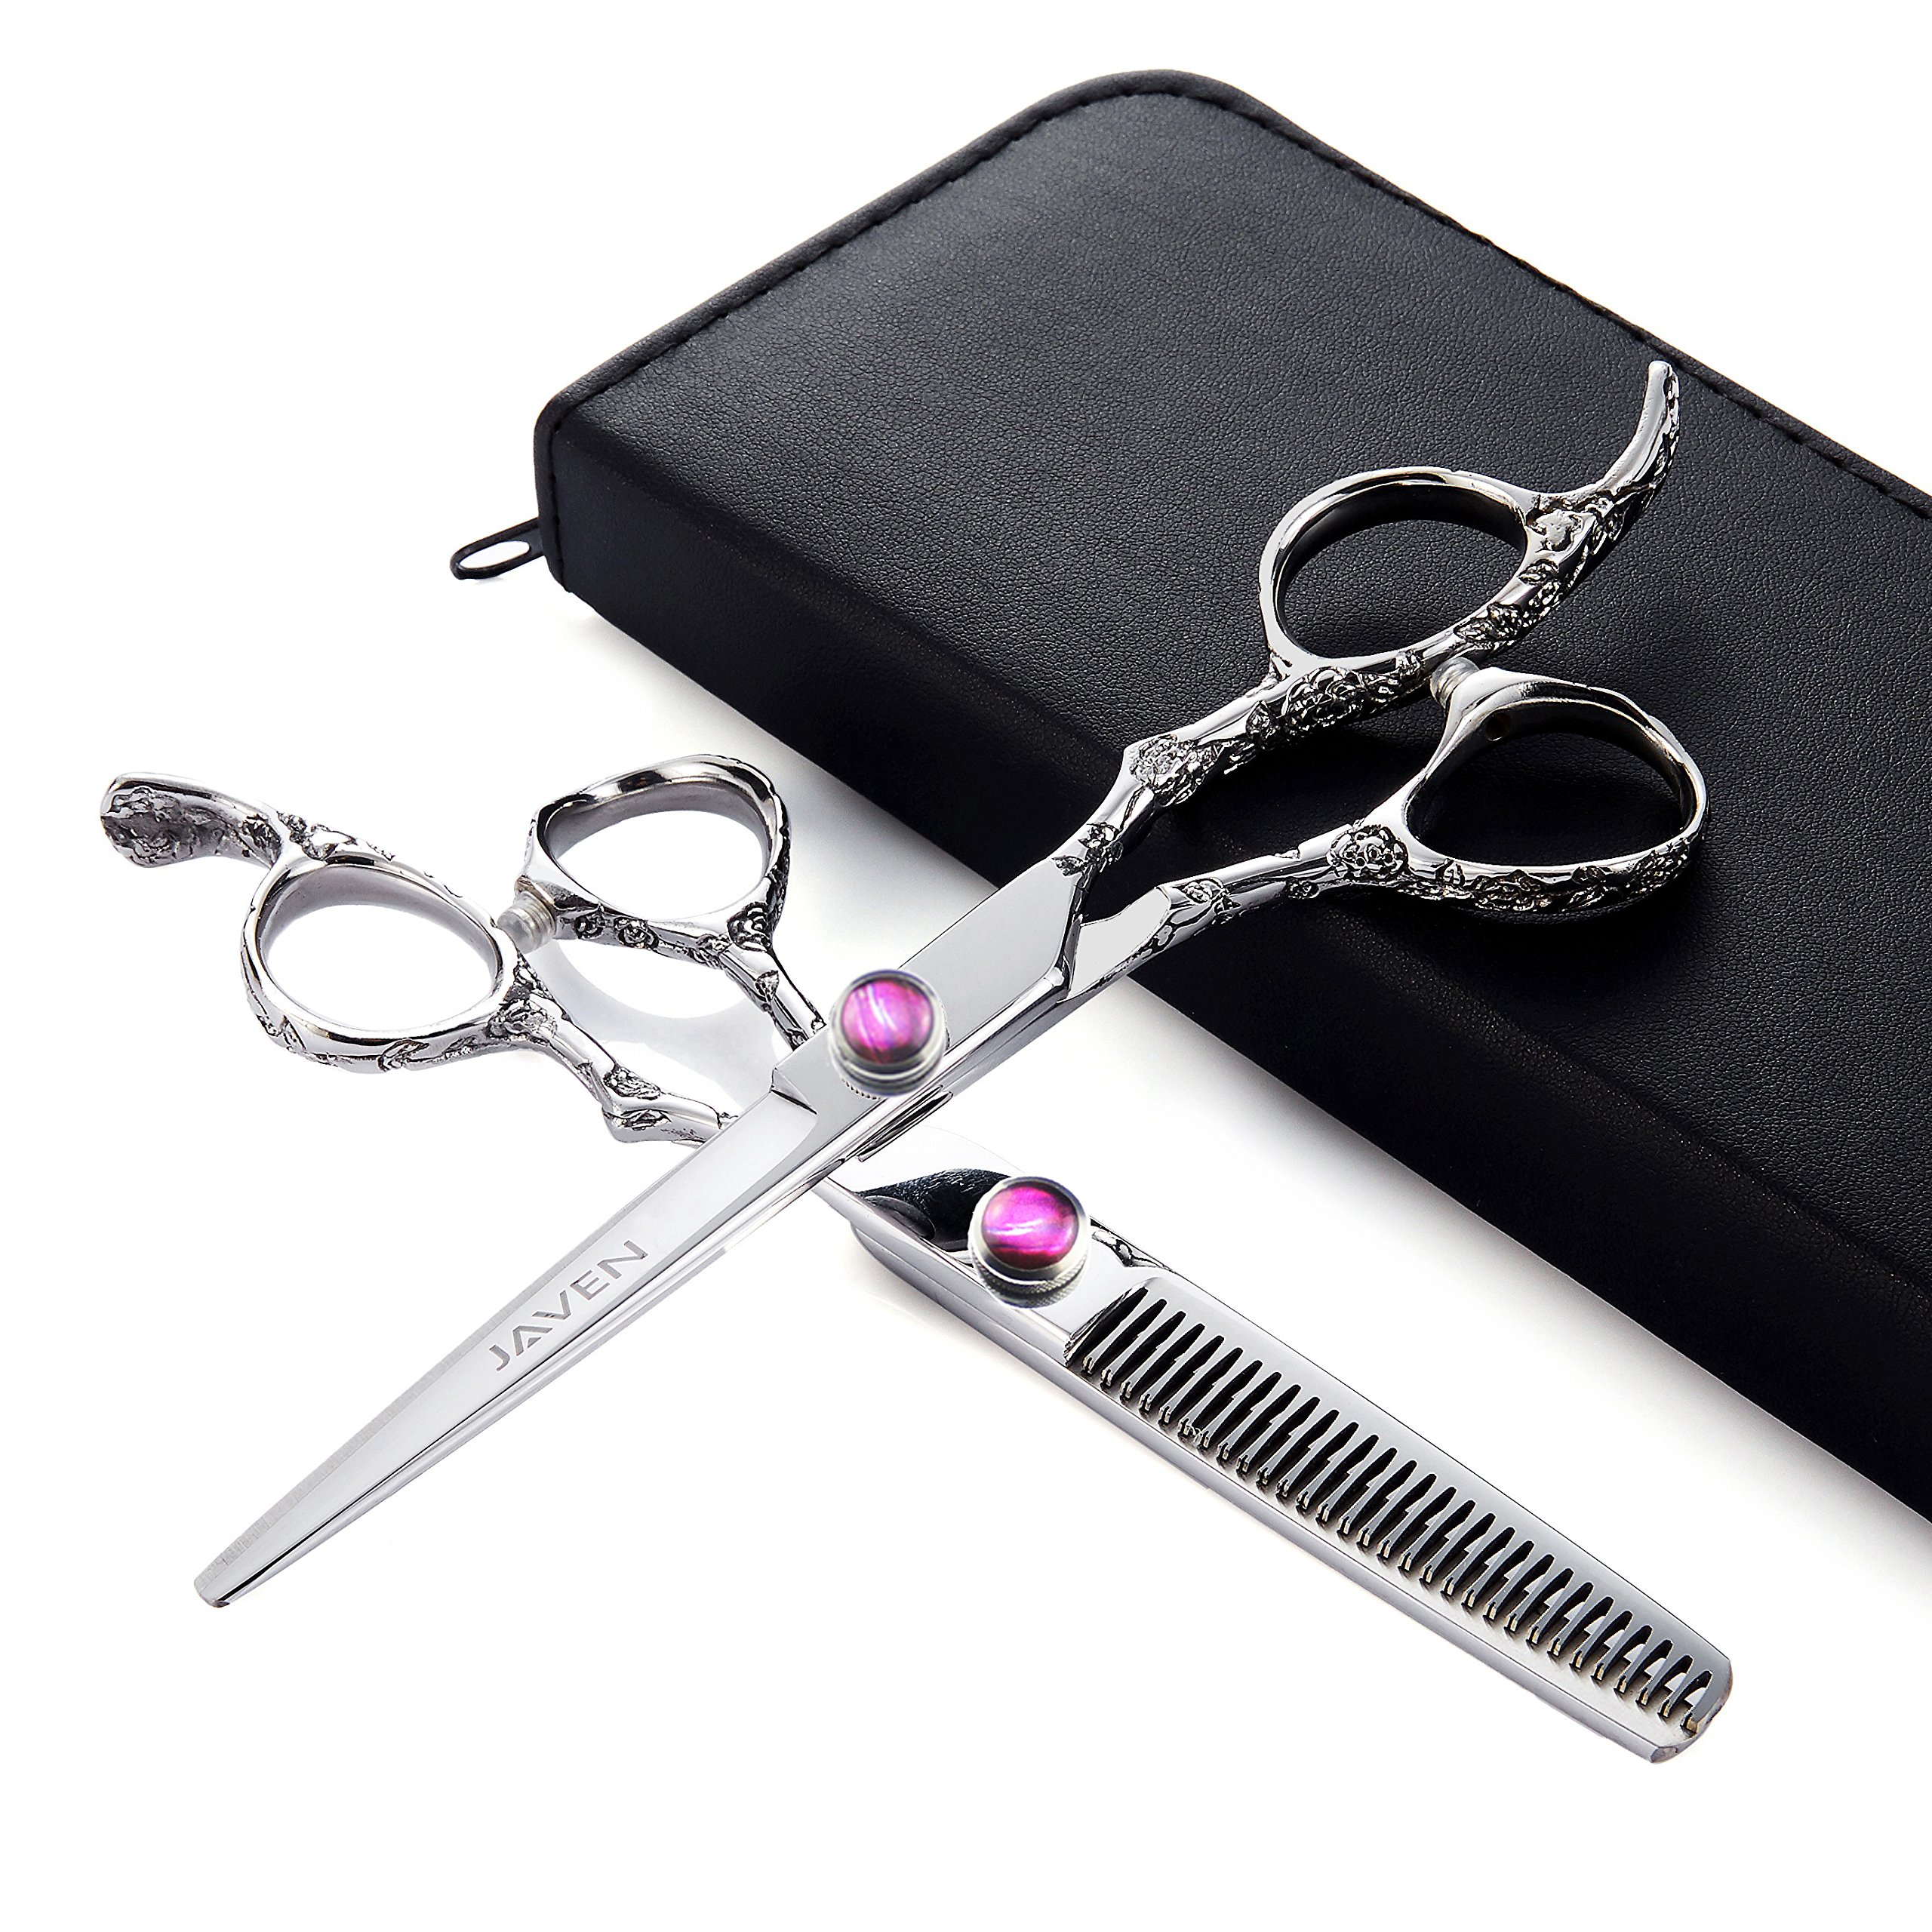 6 Inch Professional Hair Cutting Scissors Set Barber Hair Scissors Kit Hairdressing Hair Cutting Thinning Haircutting Scissors Japan 440c Stainless Steel